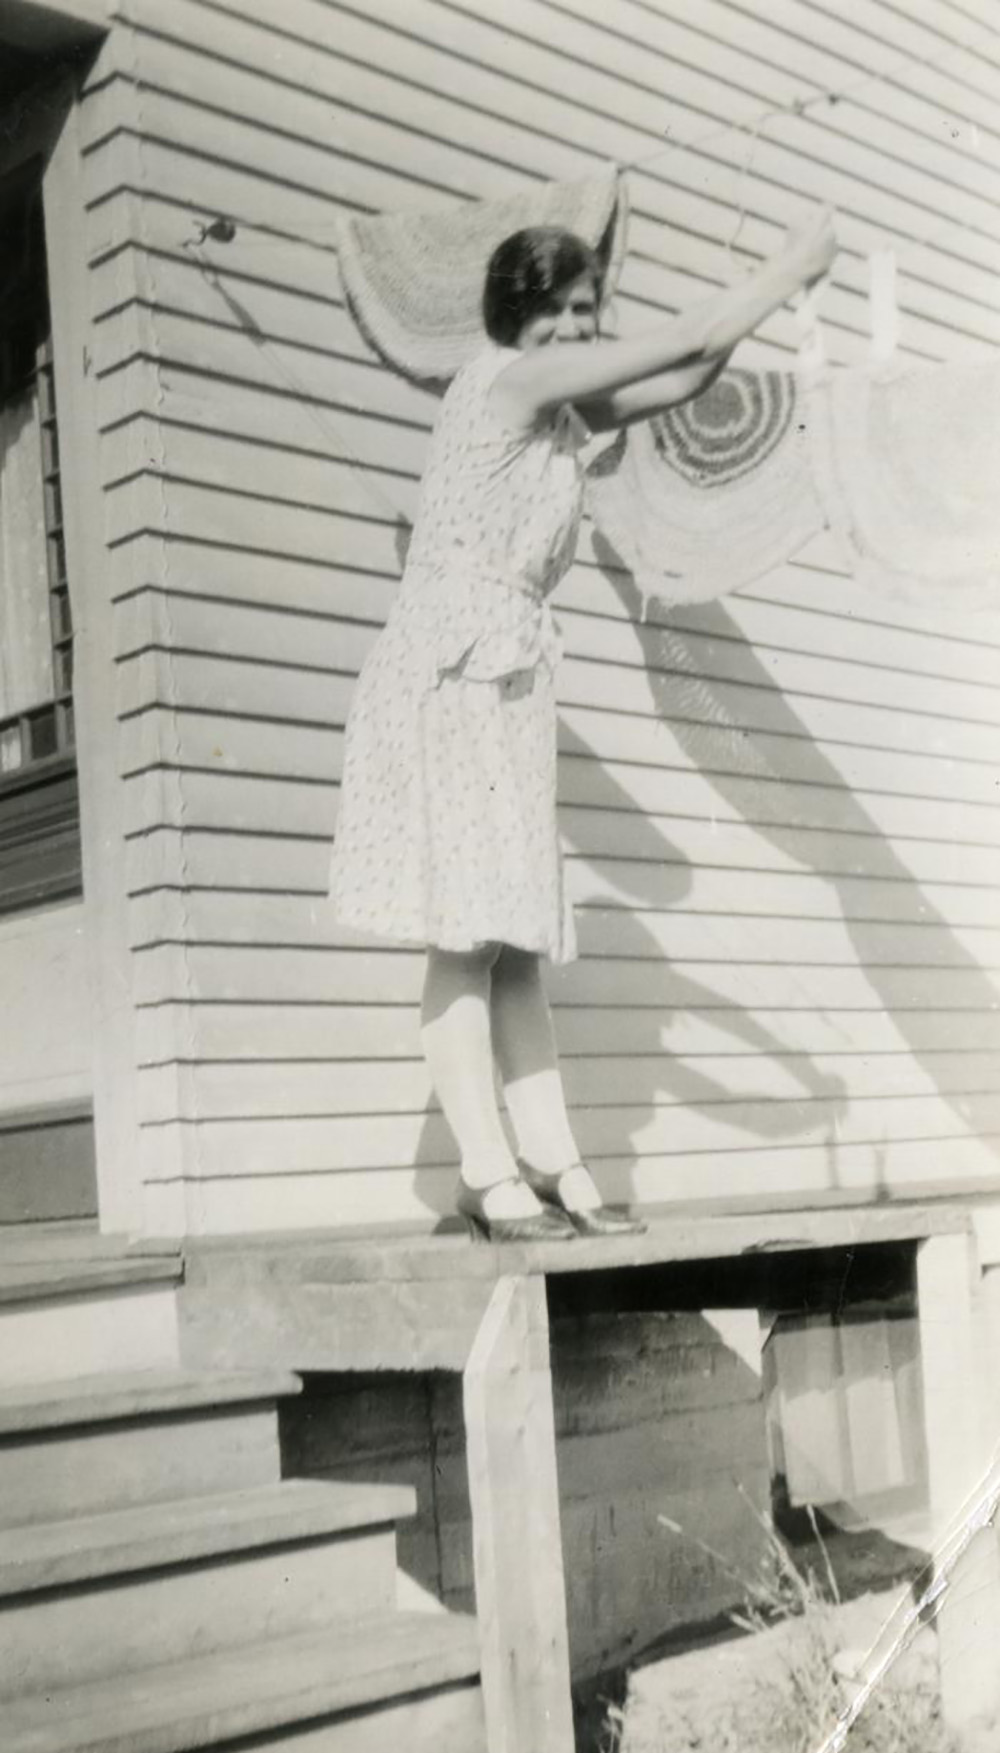 black and white photo of a 1940s woman hanging out laundry